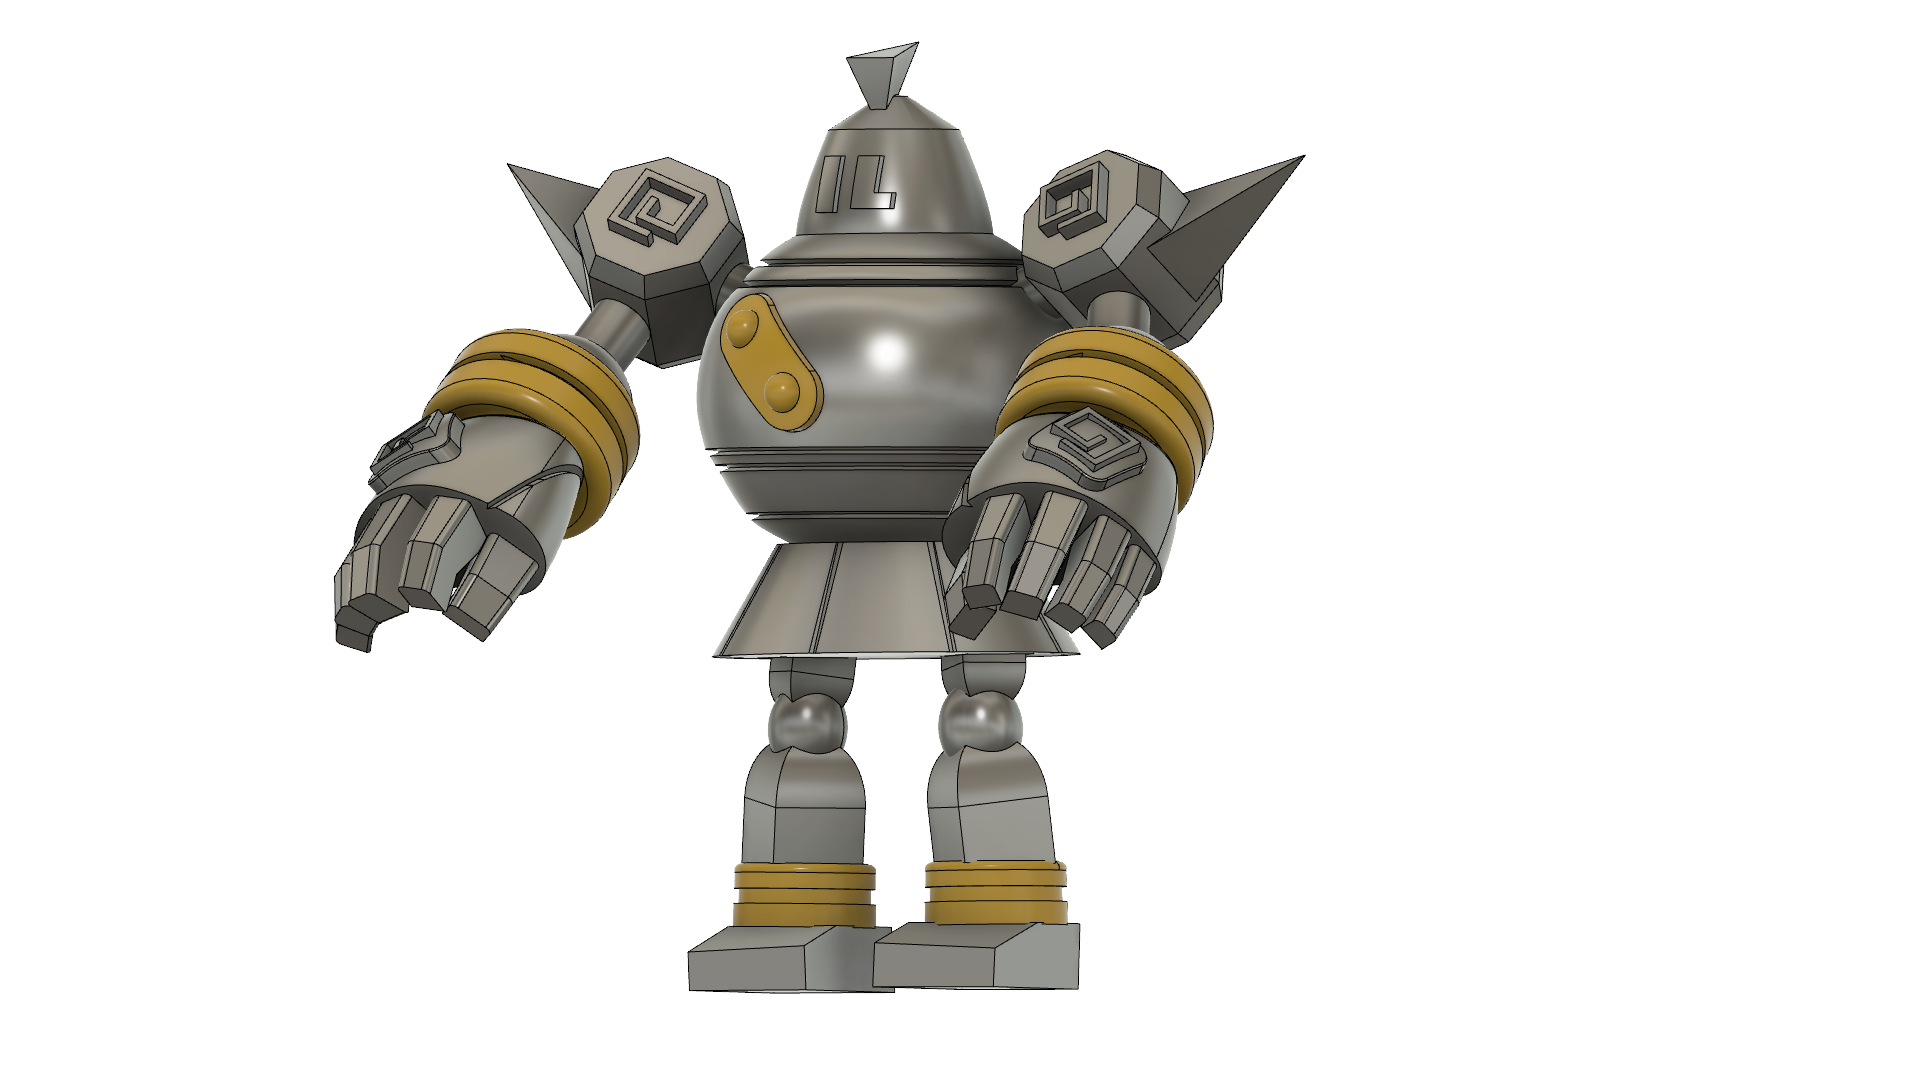 Golurk Pokemon v37.png Download free STL file Golurk Pokemon (ゴルーグ Goruugu) • Design to 3D print, Jangie